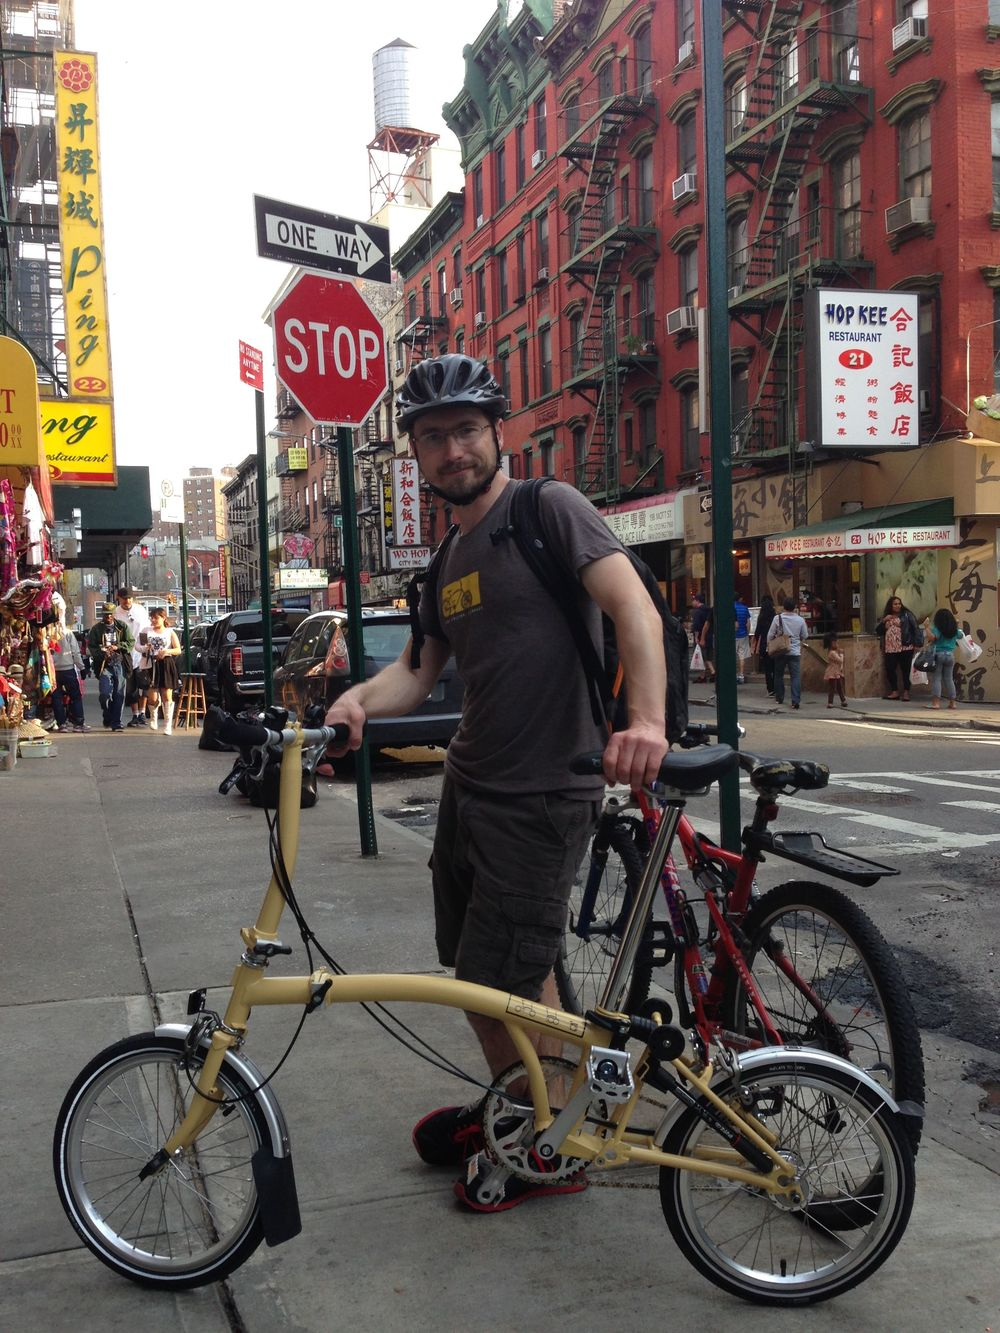 My Brompton folding bike in Chinatown, NYC.